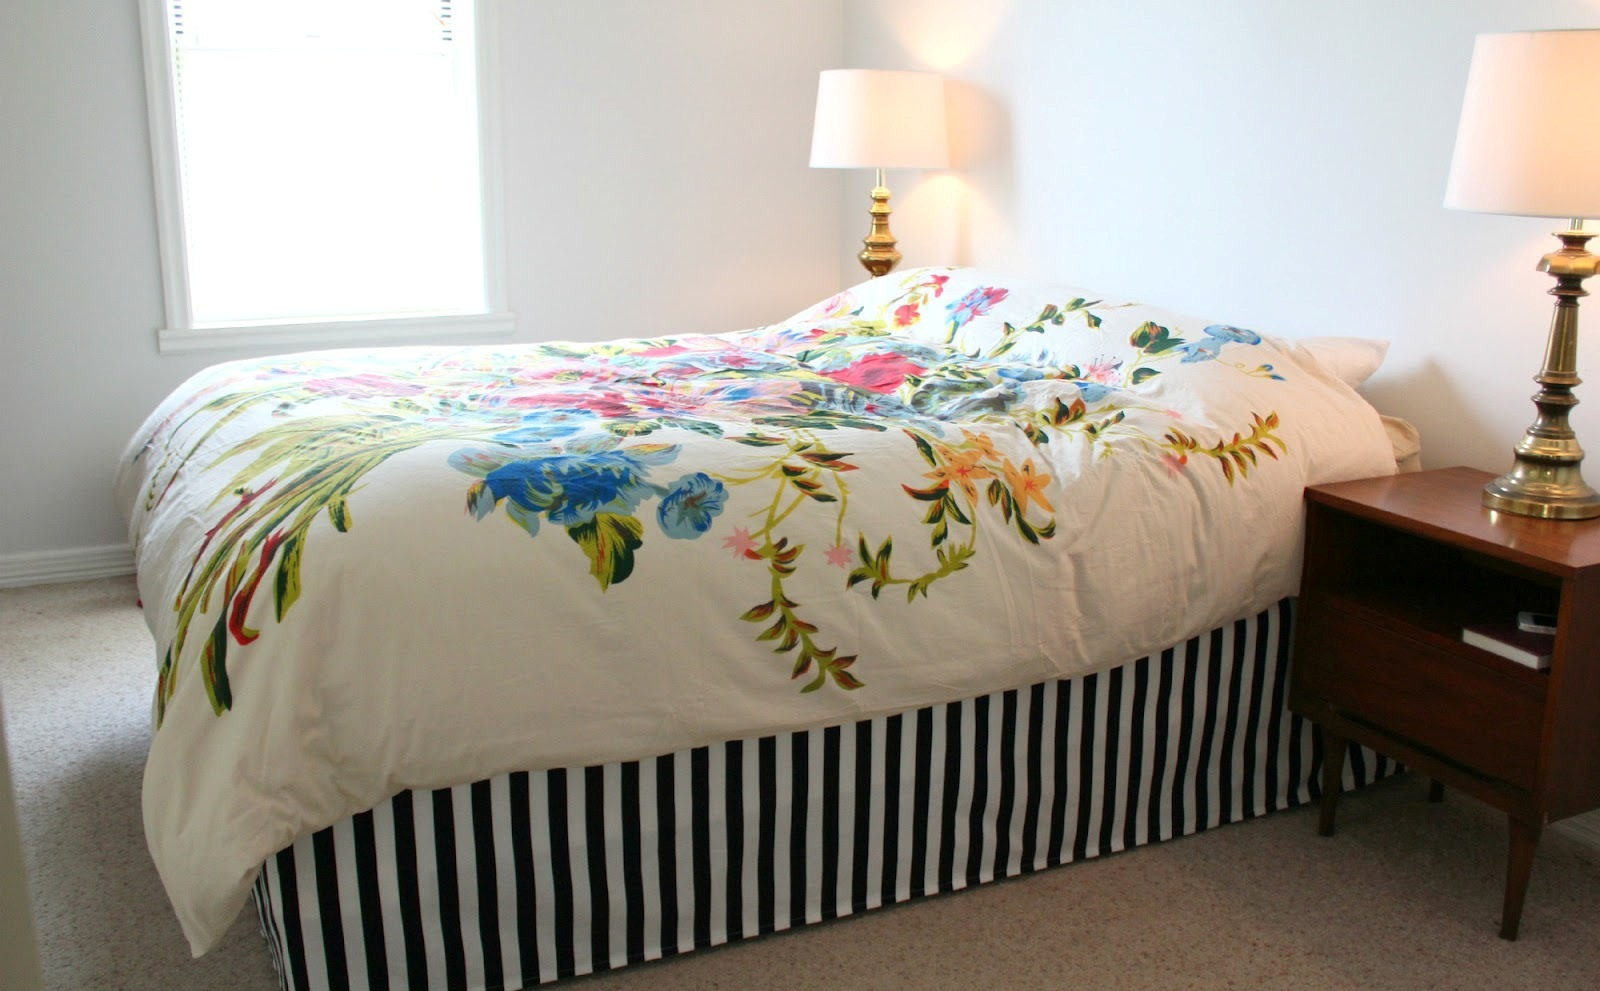 Your Bed with Beautiful Bed Skirts (1)